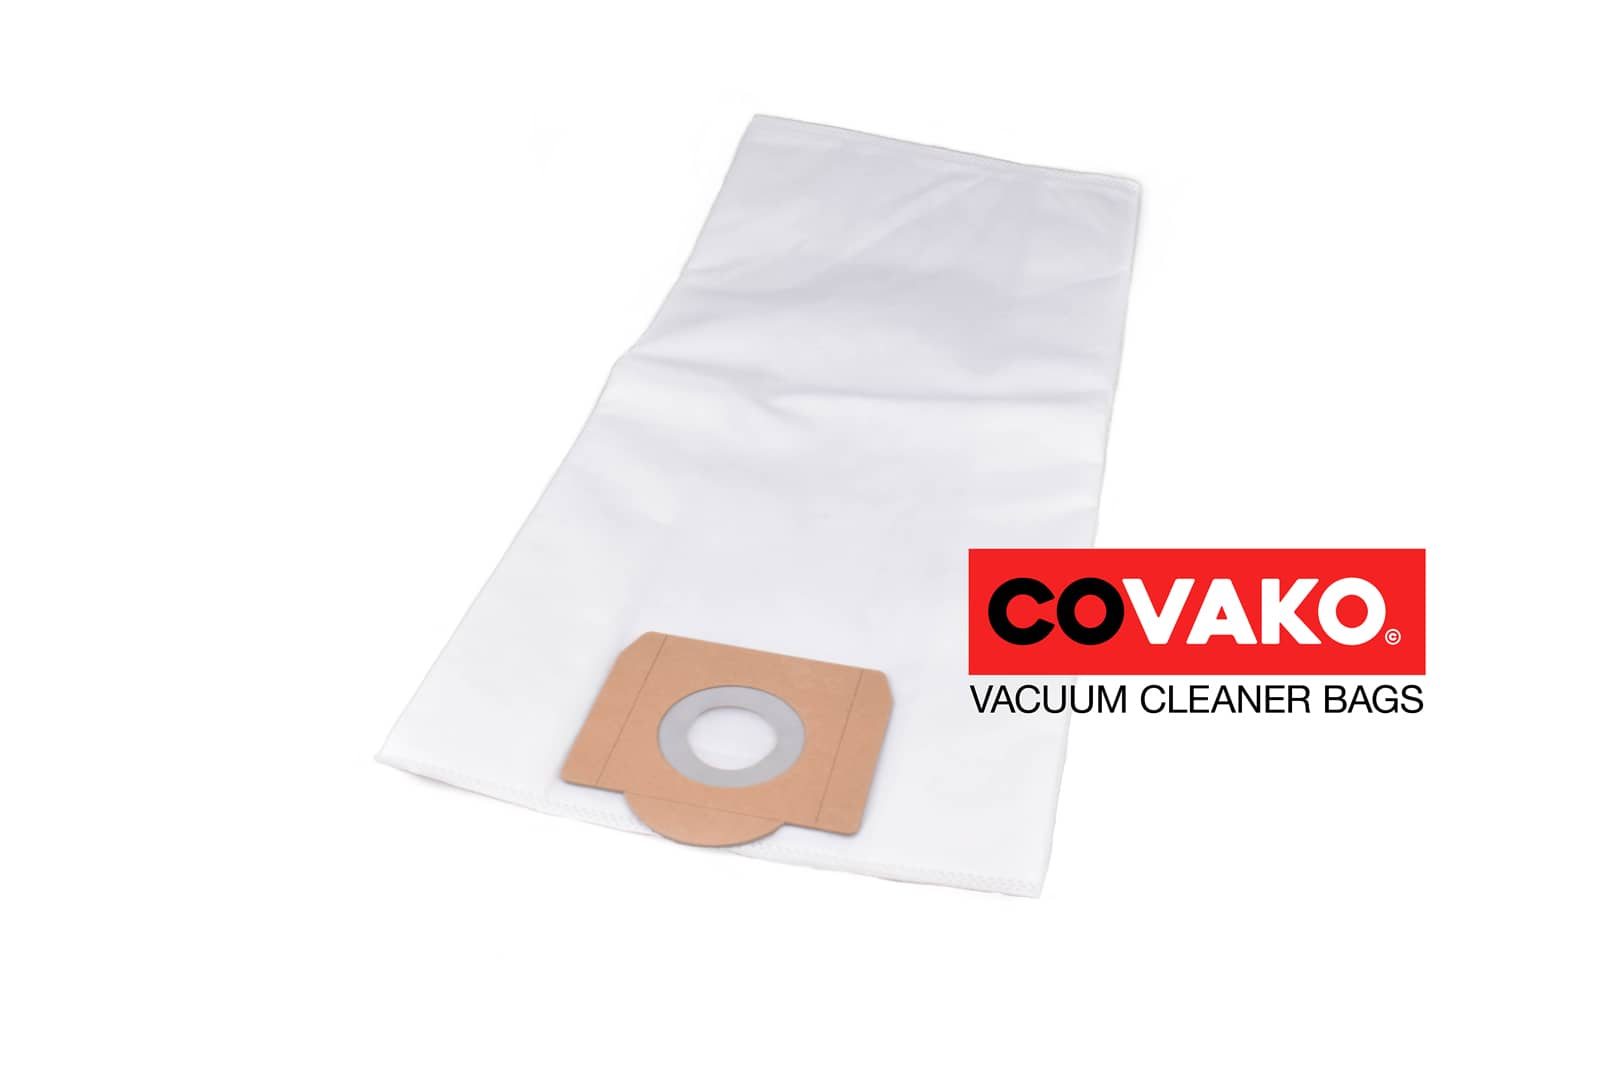 ICA GP 1/35 CYC / Synthesis - ICA vacuum cleaner bags